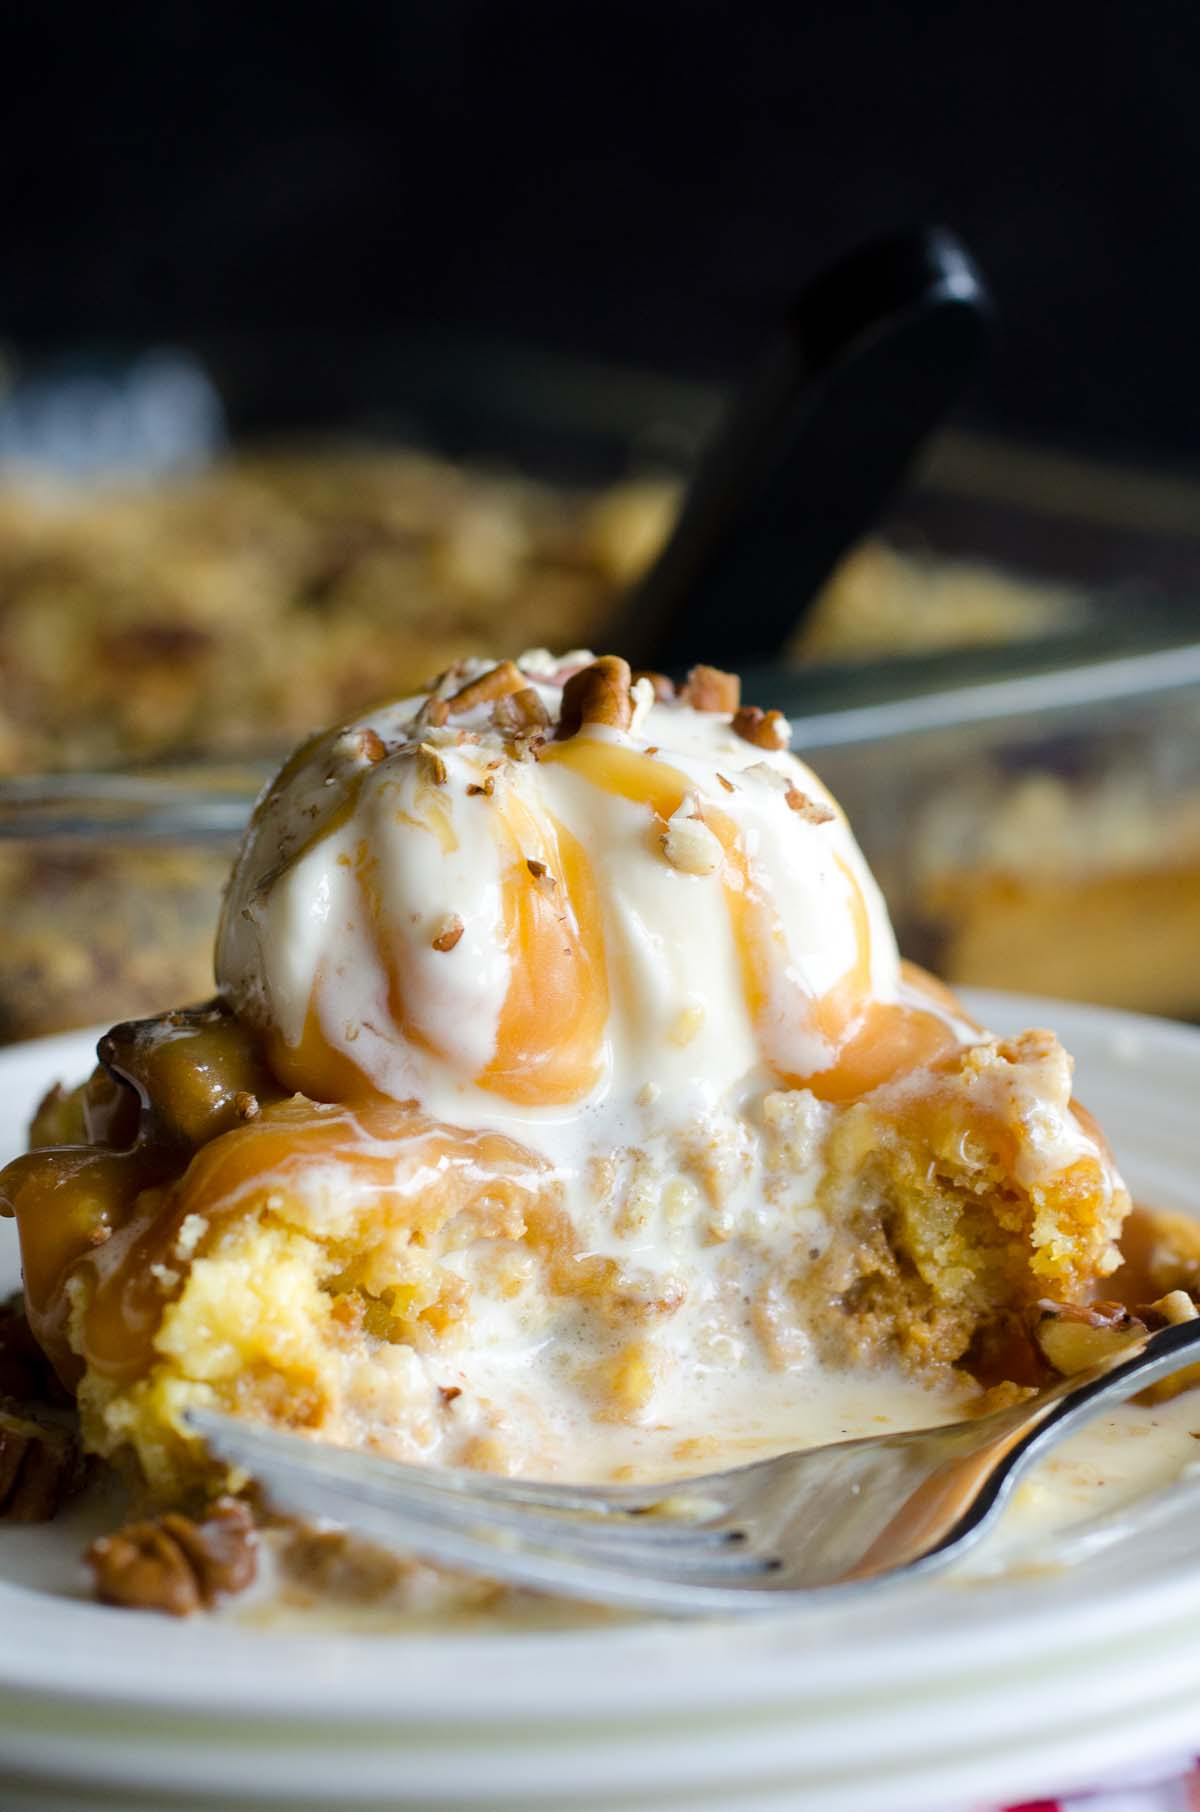 pumpkin cake with melting ice cream and caramel topping with pecans on a plate with fork